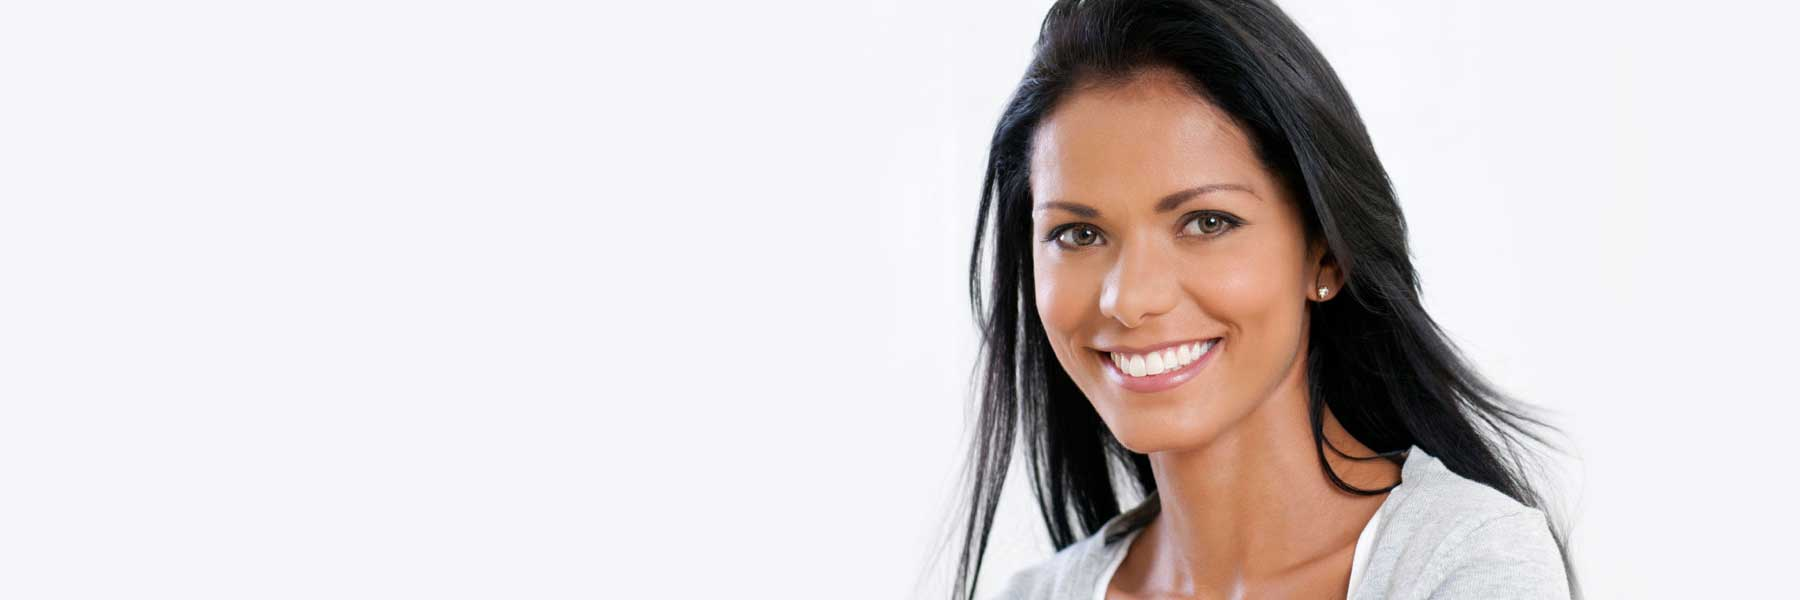 Invisalign Clear Braces in Apex, NC banner image